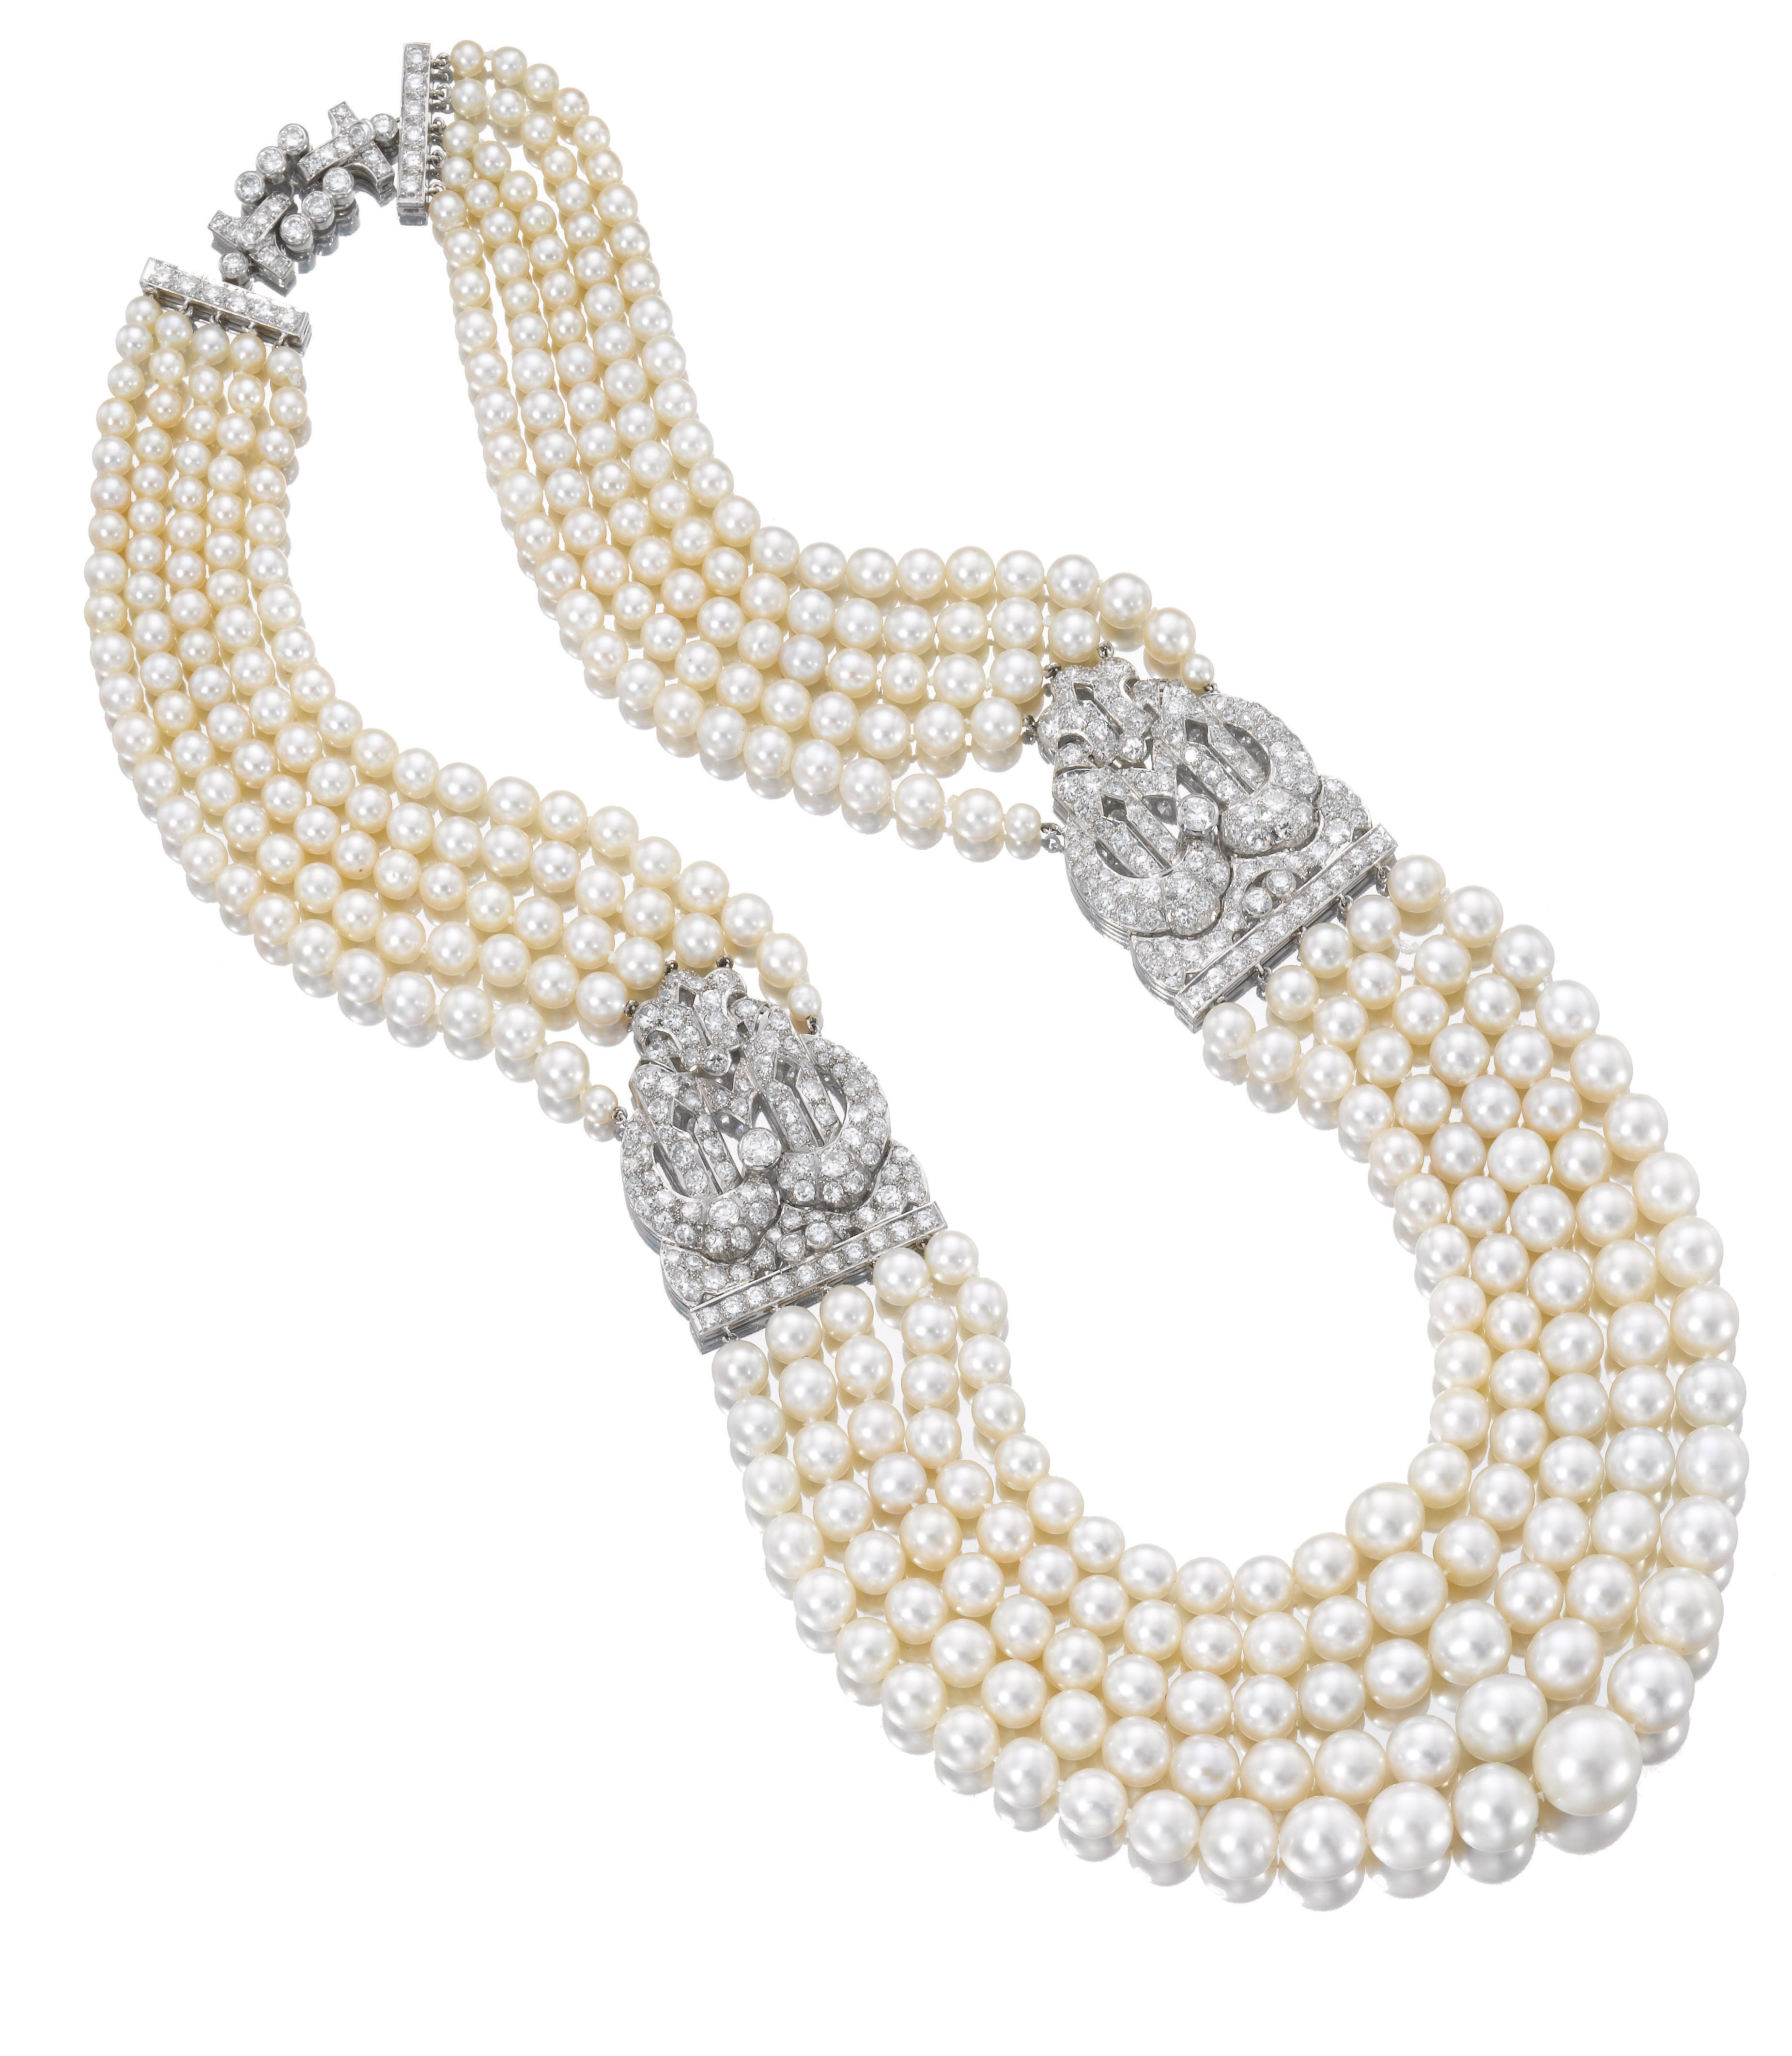 Necklace, natural pearls from the Gulf with platinum and diamond clasps The Qatar Museums Authority Collection 1930s by Cartier Photo © Sotheby's